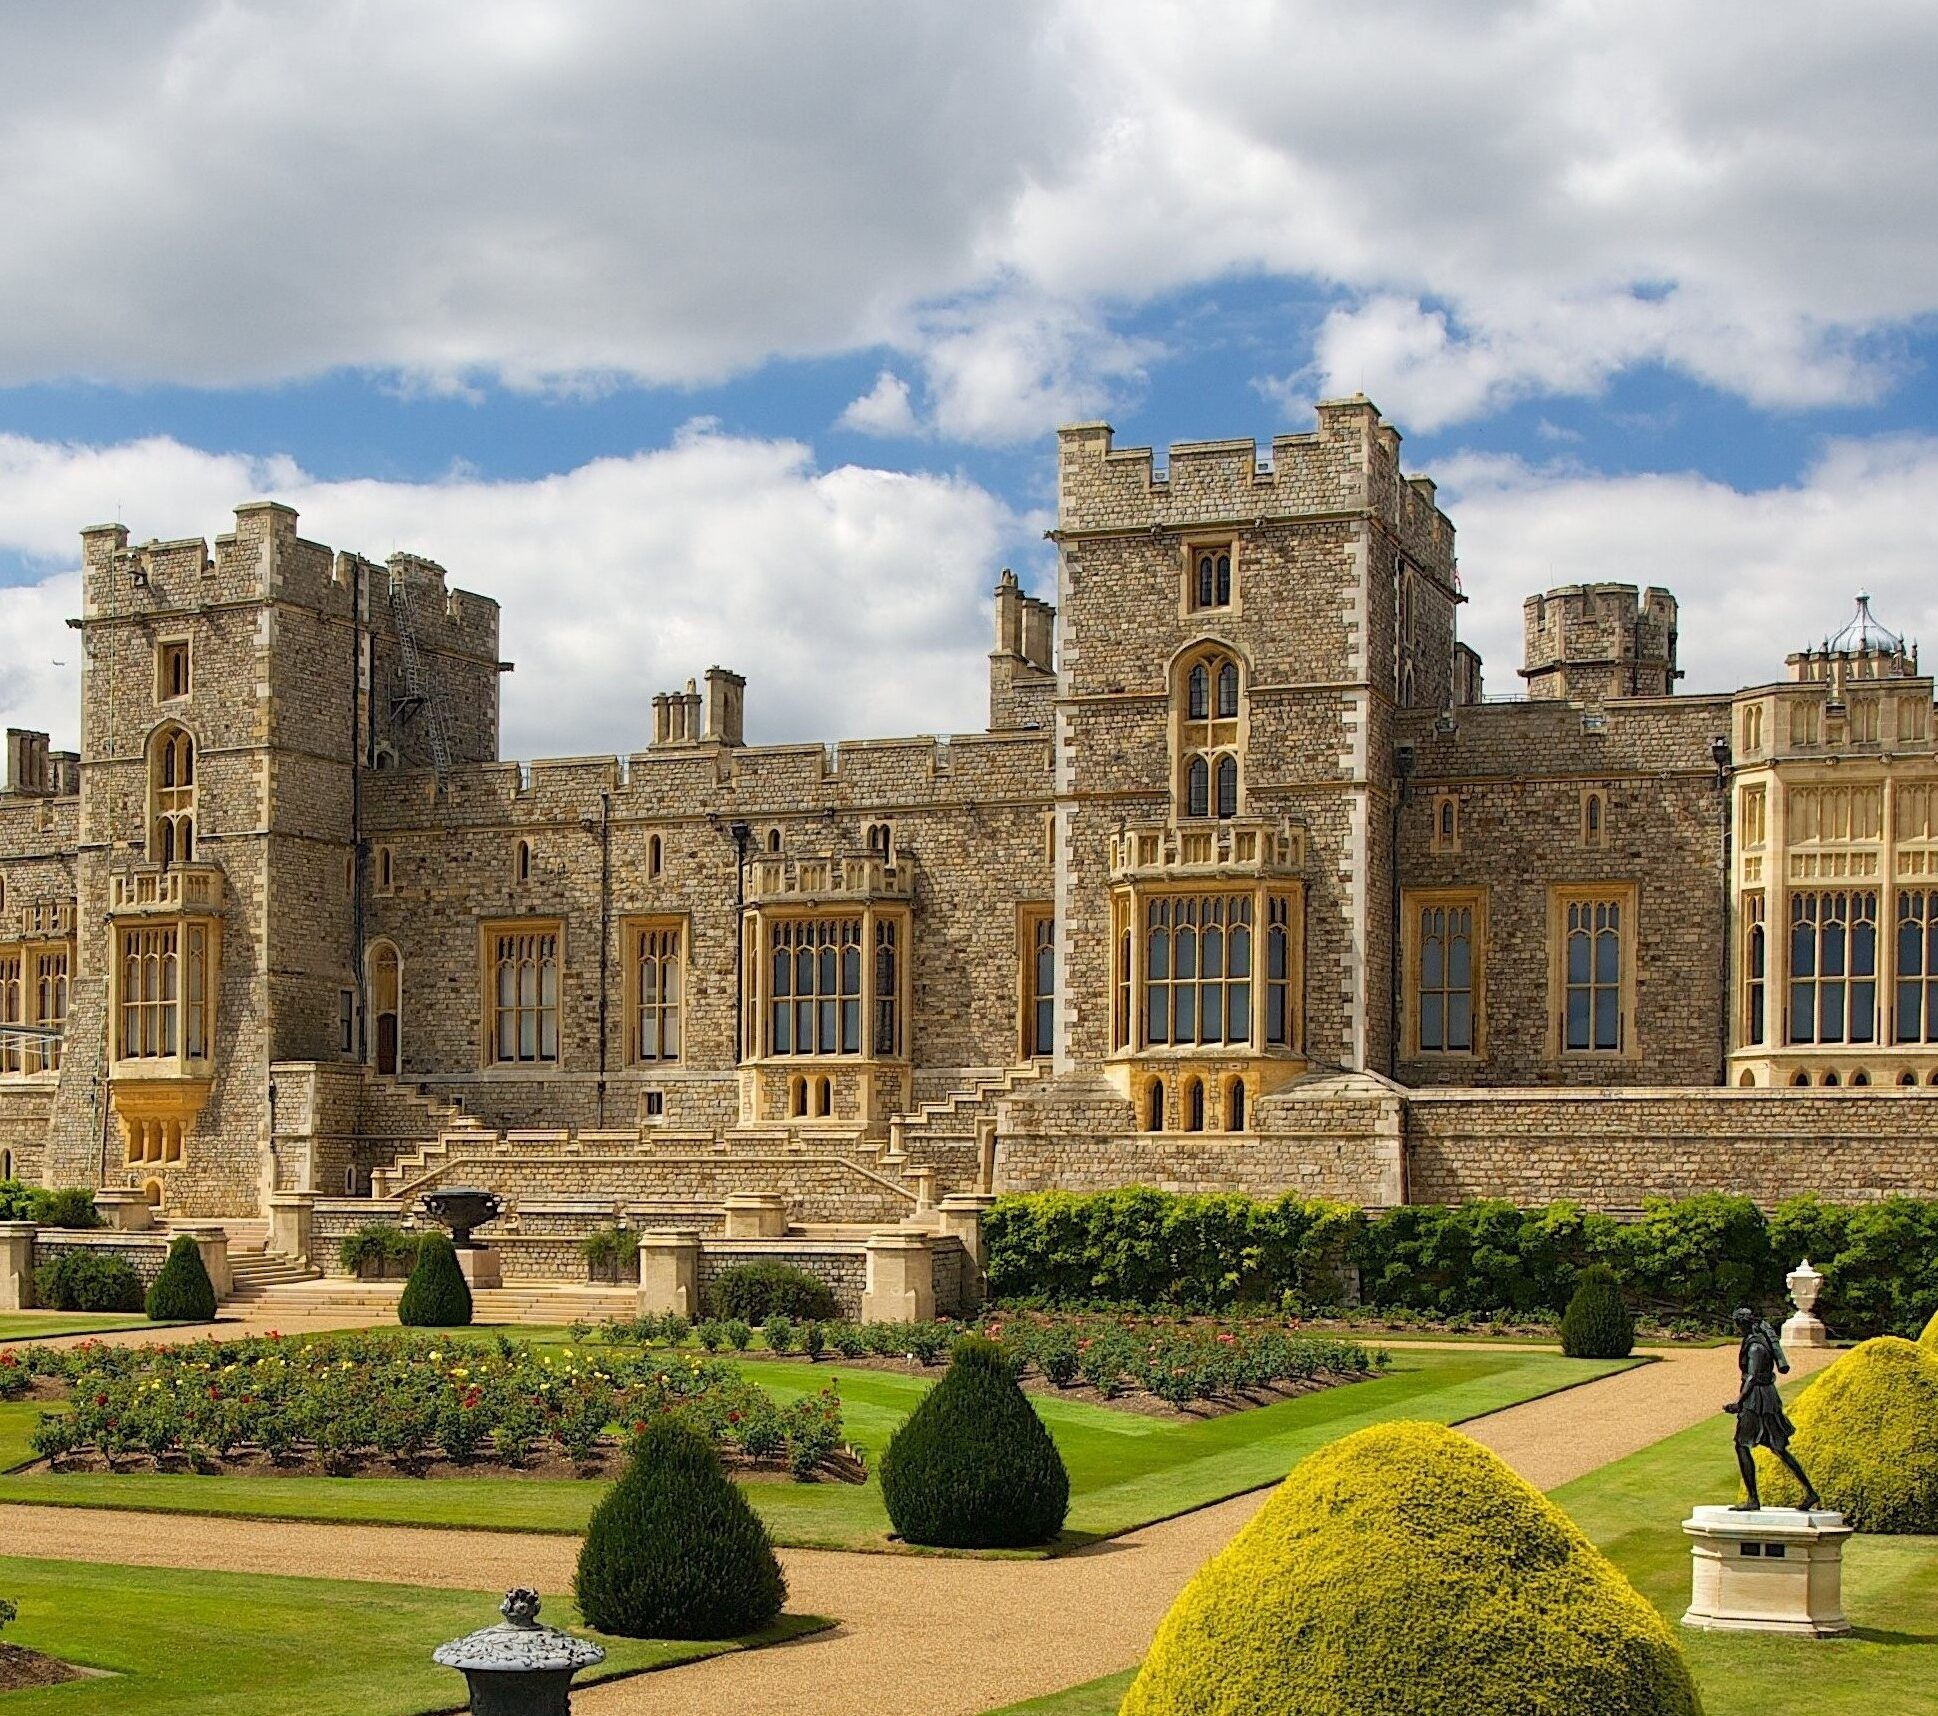 Windsor Castle Roofing Project